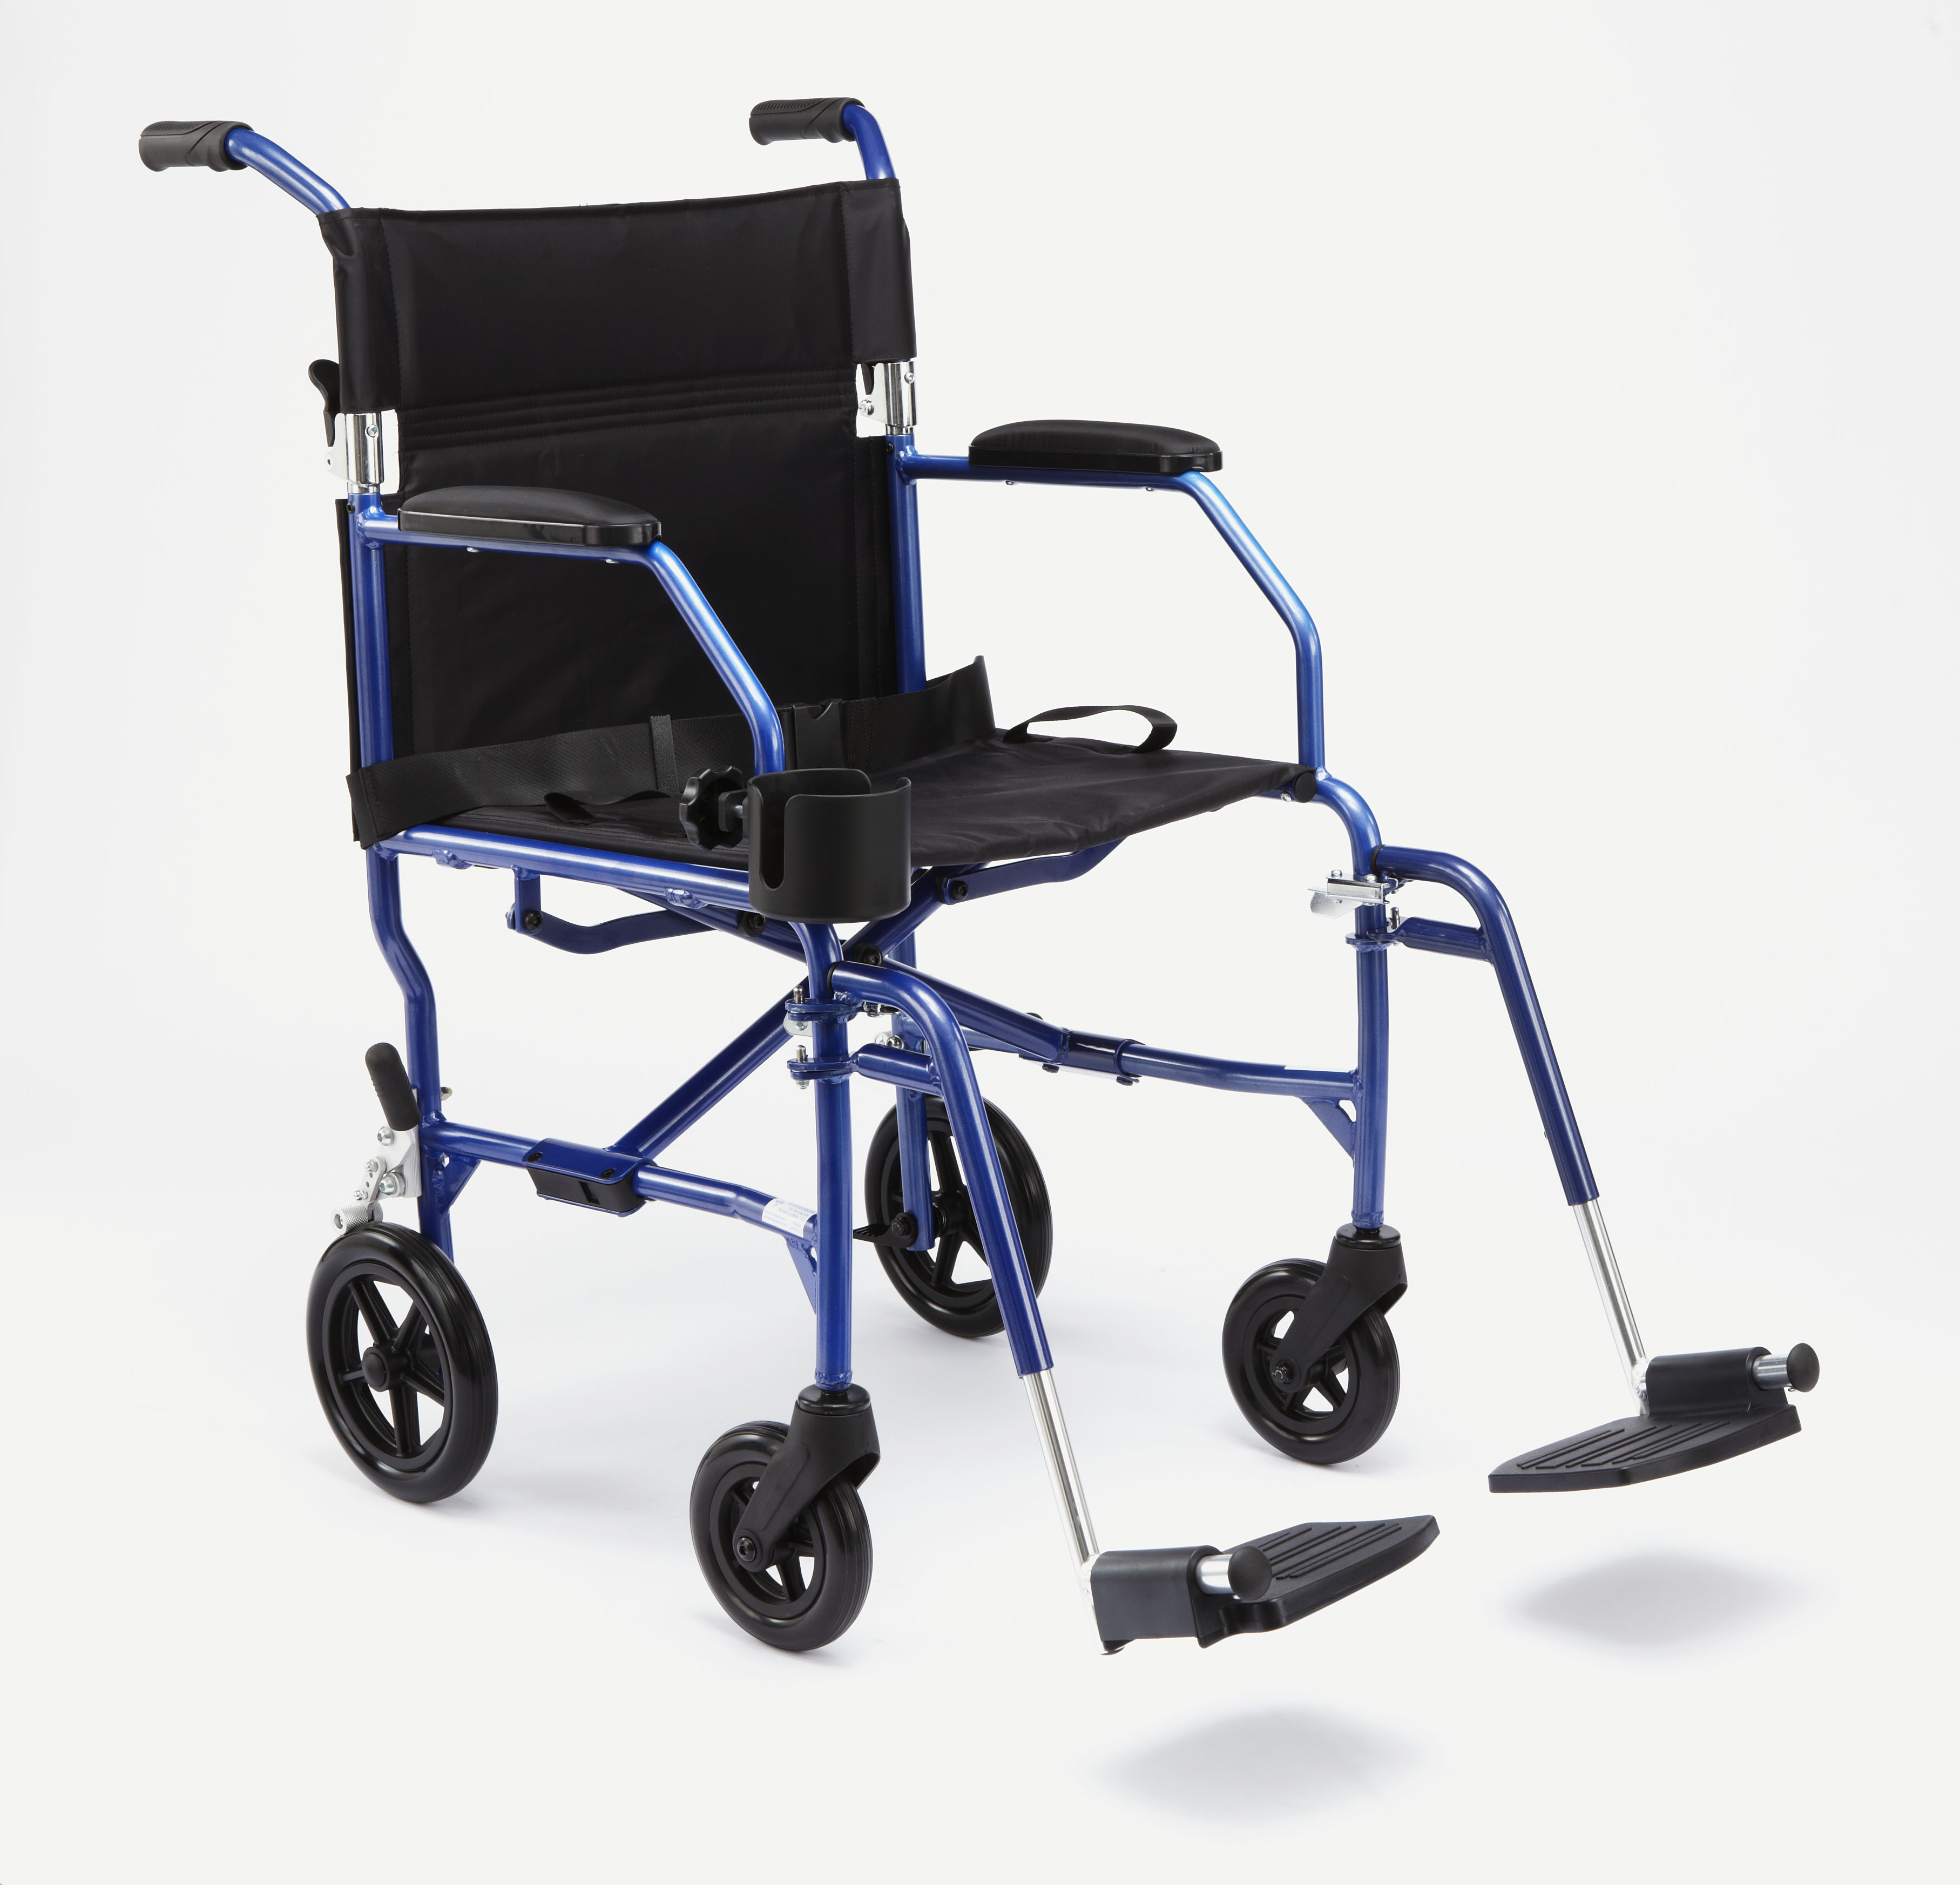 chairs chair transport carex amazon personal health com brands dp care